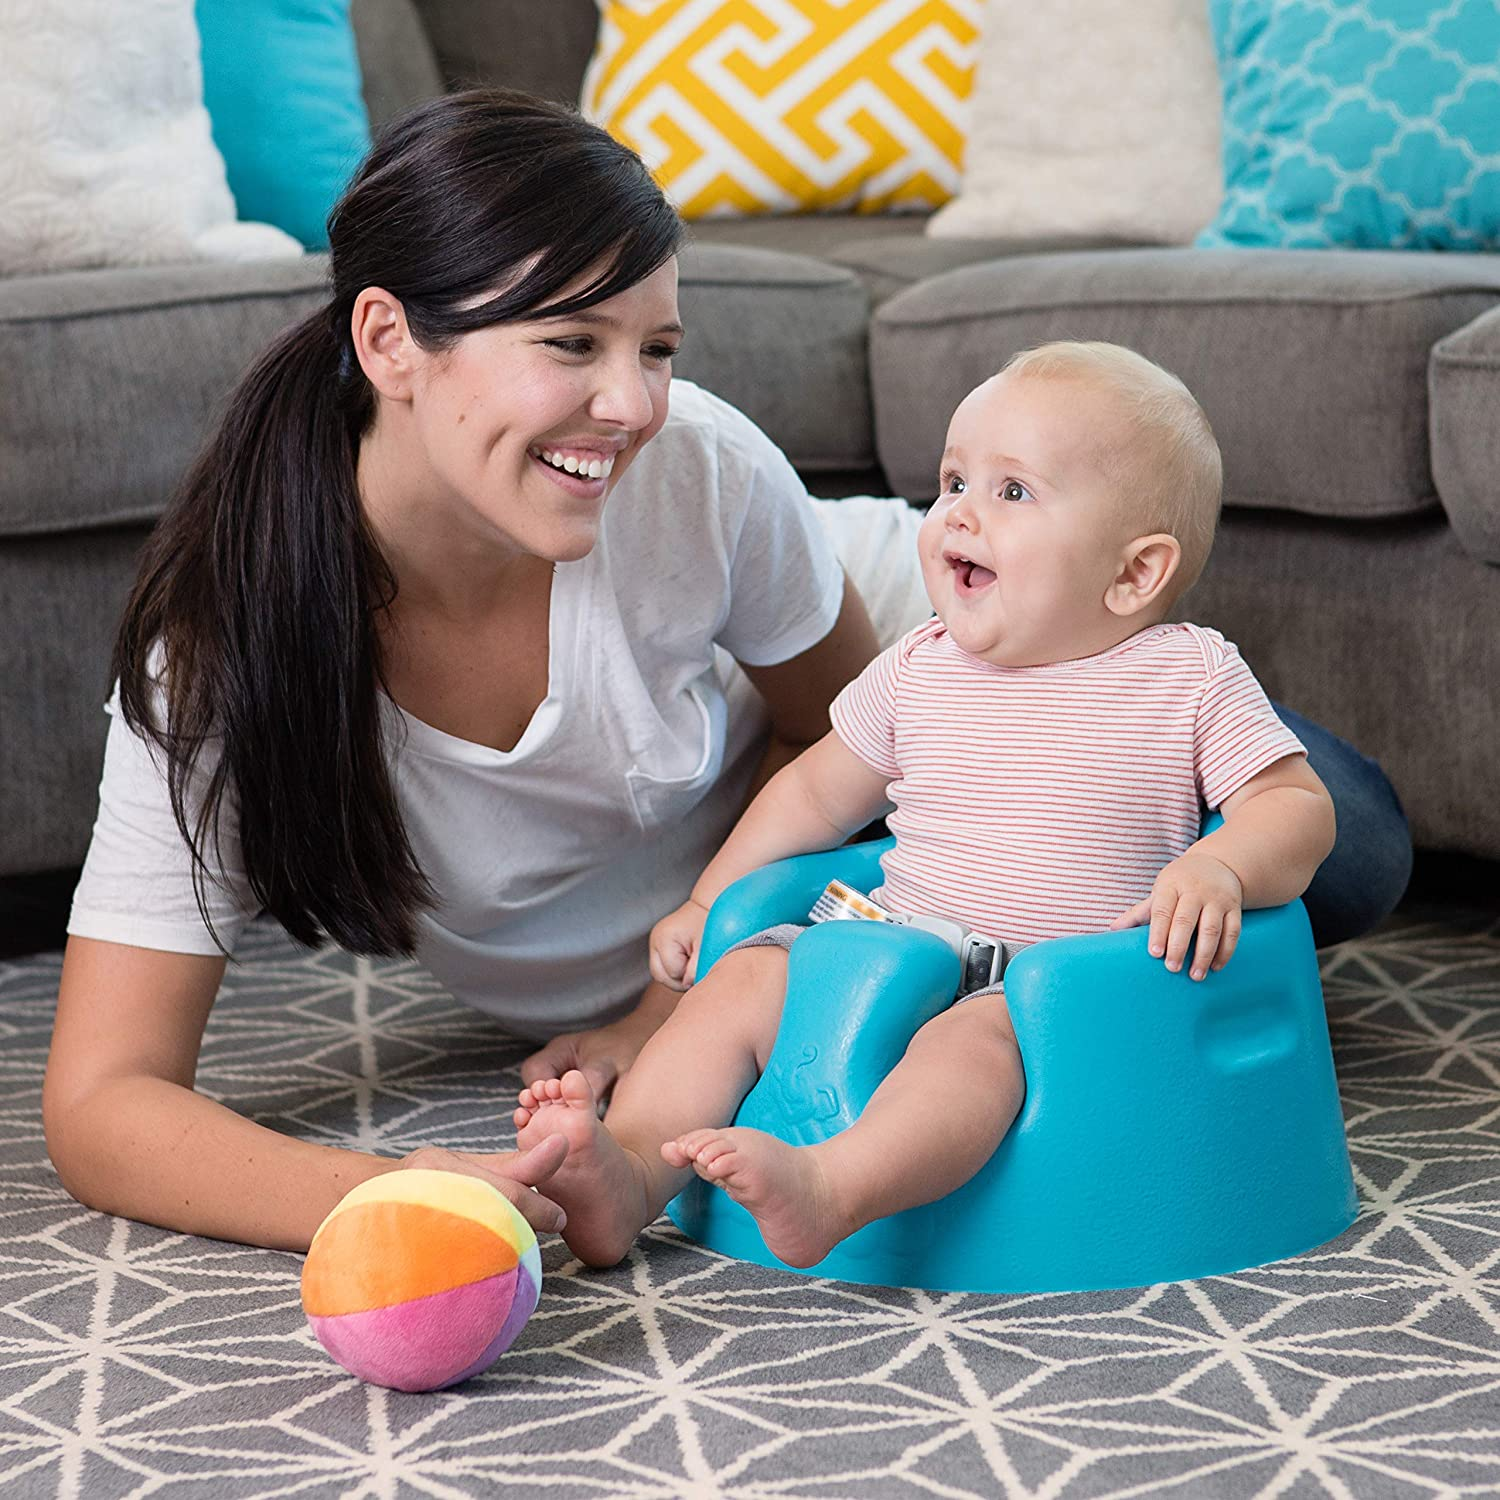 Amazoncom Bumbo Floor Seat Blue Infant Sitting Chairs Baby